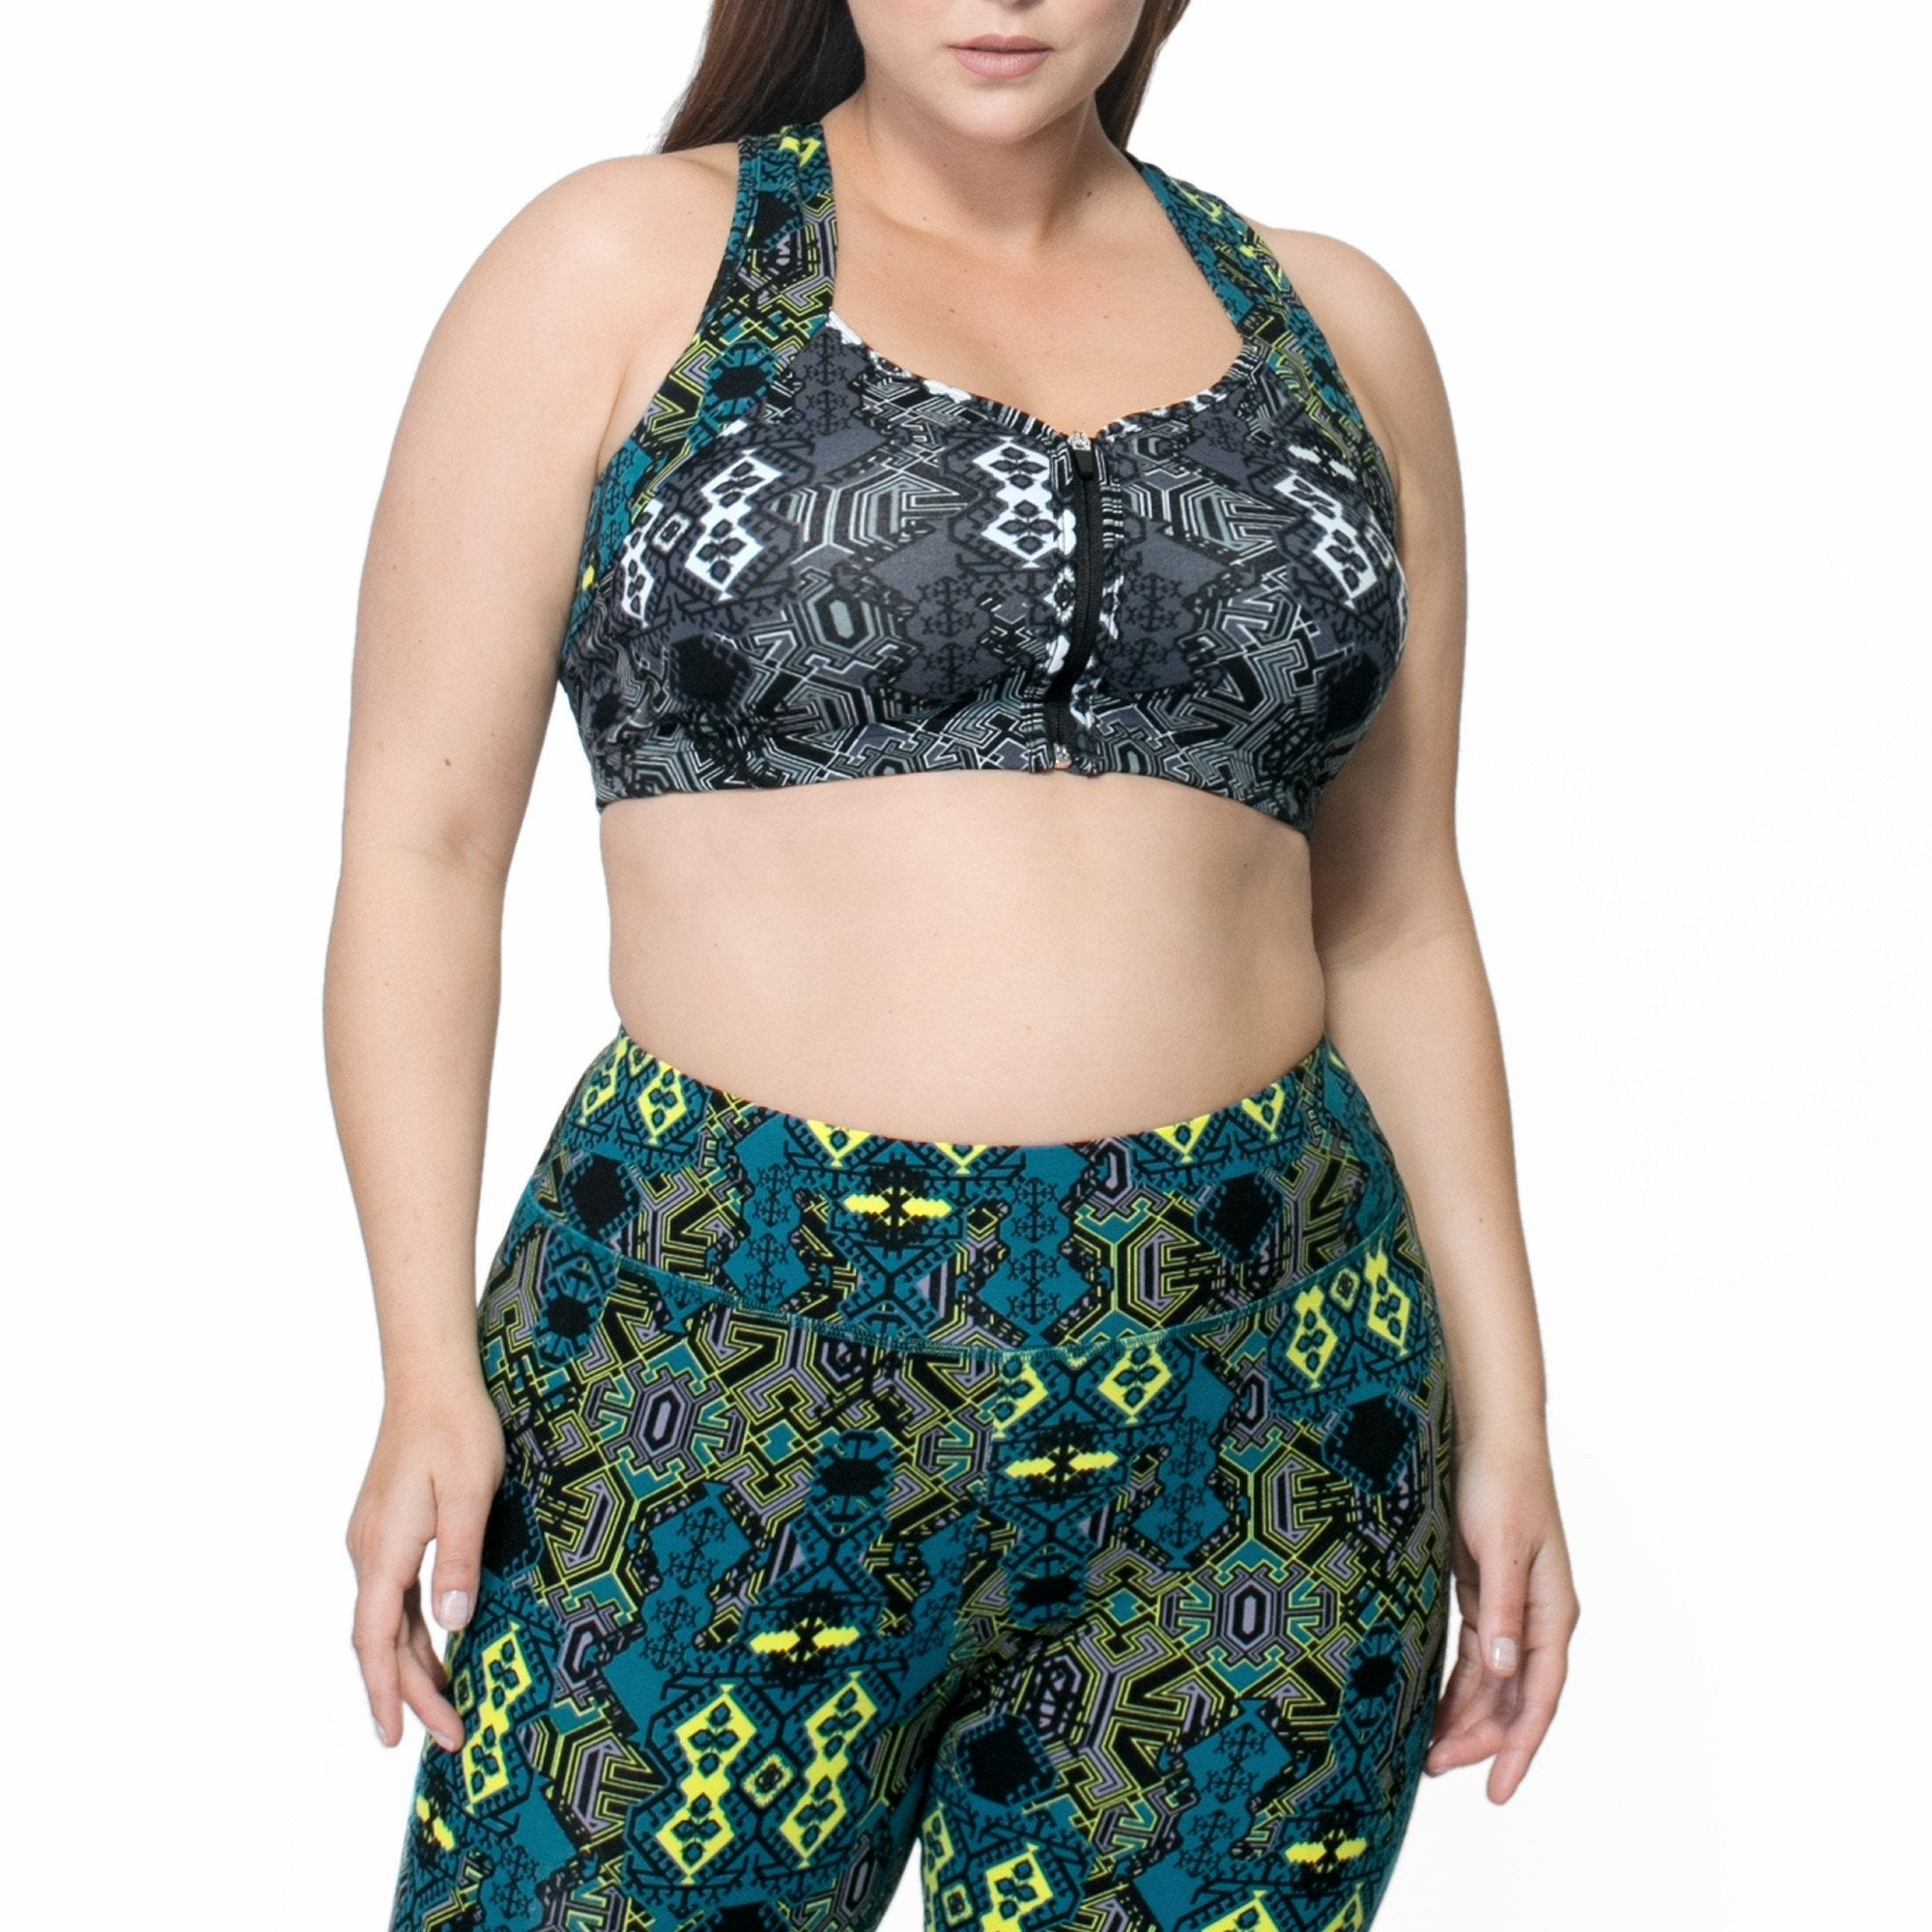 Bette Mix Print Bra - Rainbeau Curves, 14/16 / Multi Moroccan Mystic, activewear, athleisure, fitness, workout, gym, performance, womens, ladies, plus size, curvy, full figured, spandex, cotton, polyester - 1